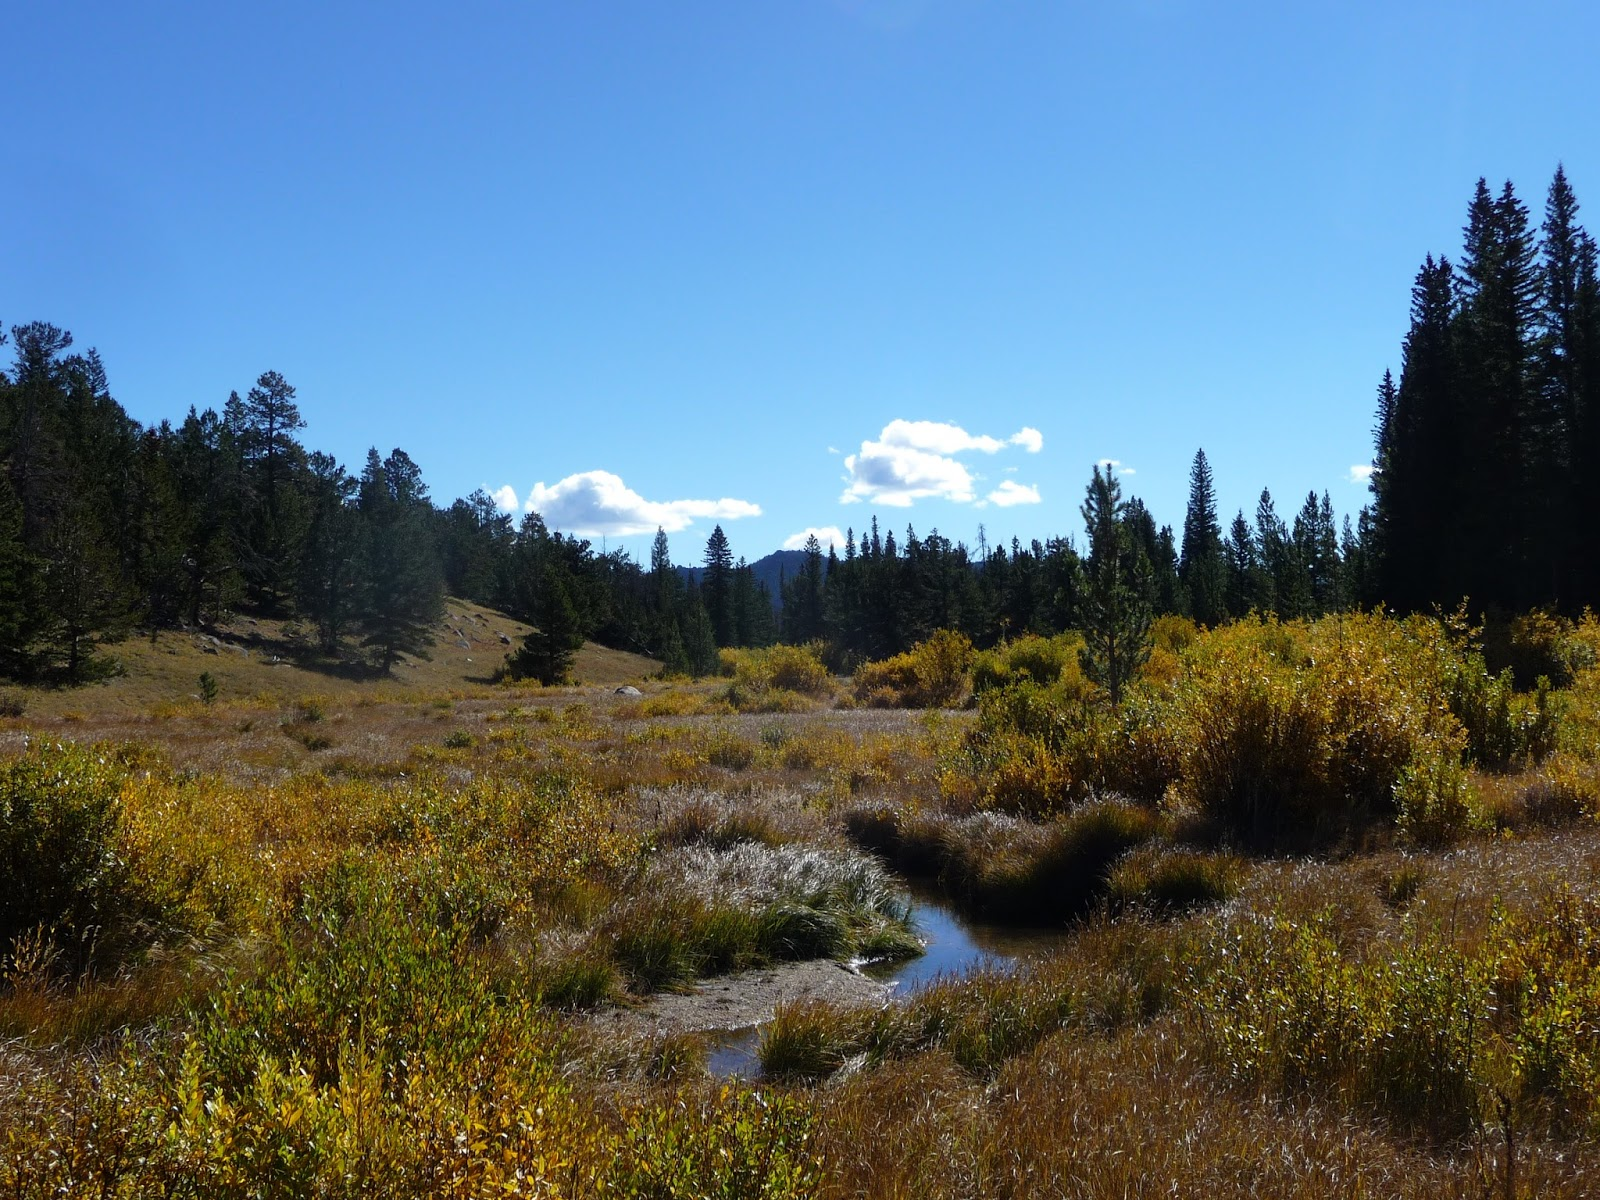 we took a lot of photos as we drove along the main highway through the park trail ridge road